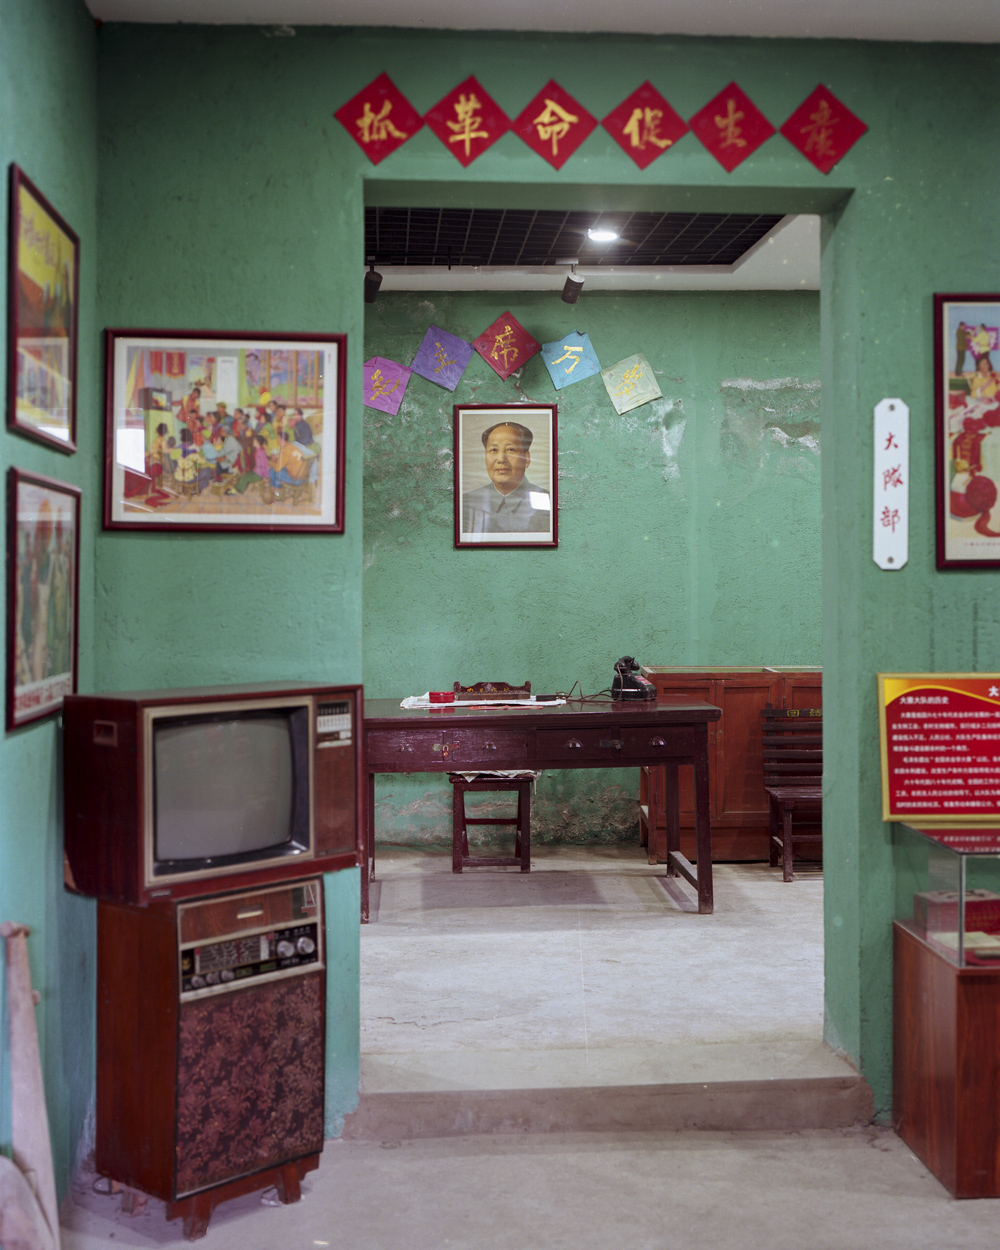 An exhibition of objects from the Mao era at the Chinese Dream Red-Themed Museum, in Dazhai Village, Shanxi province, April 18, 2021. Shi Yangkun/Sixth Tone